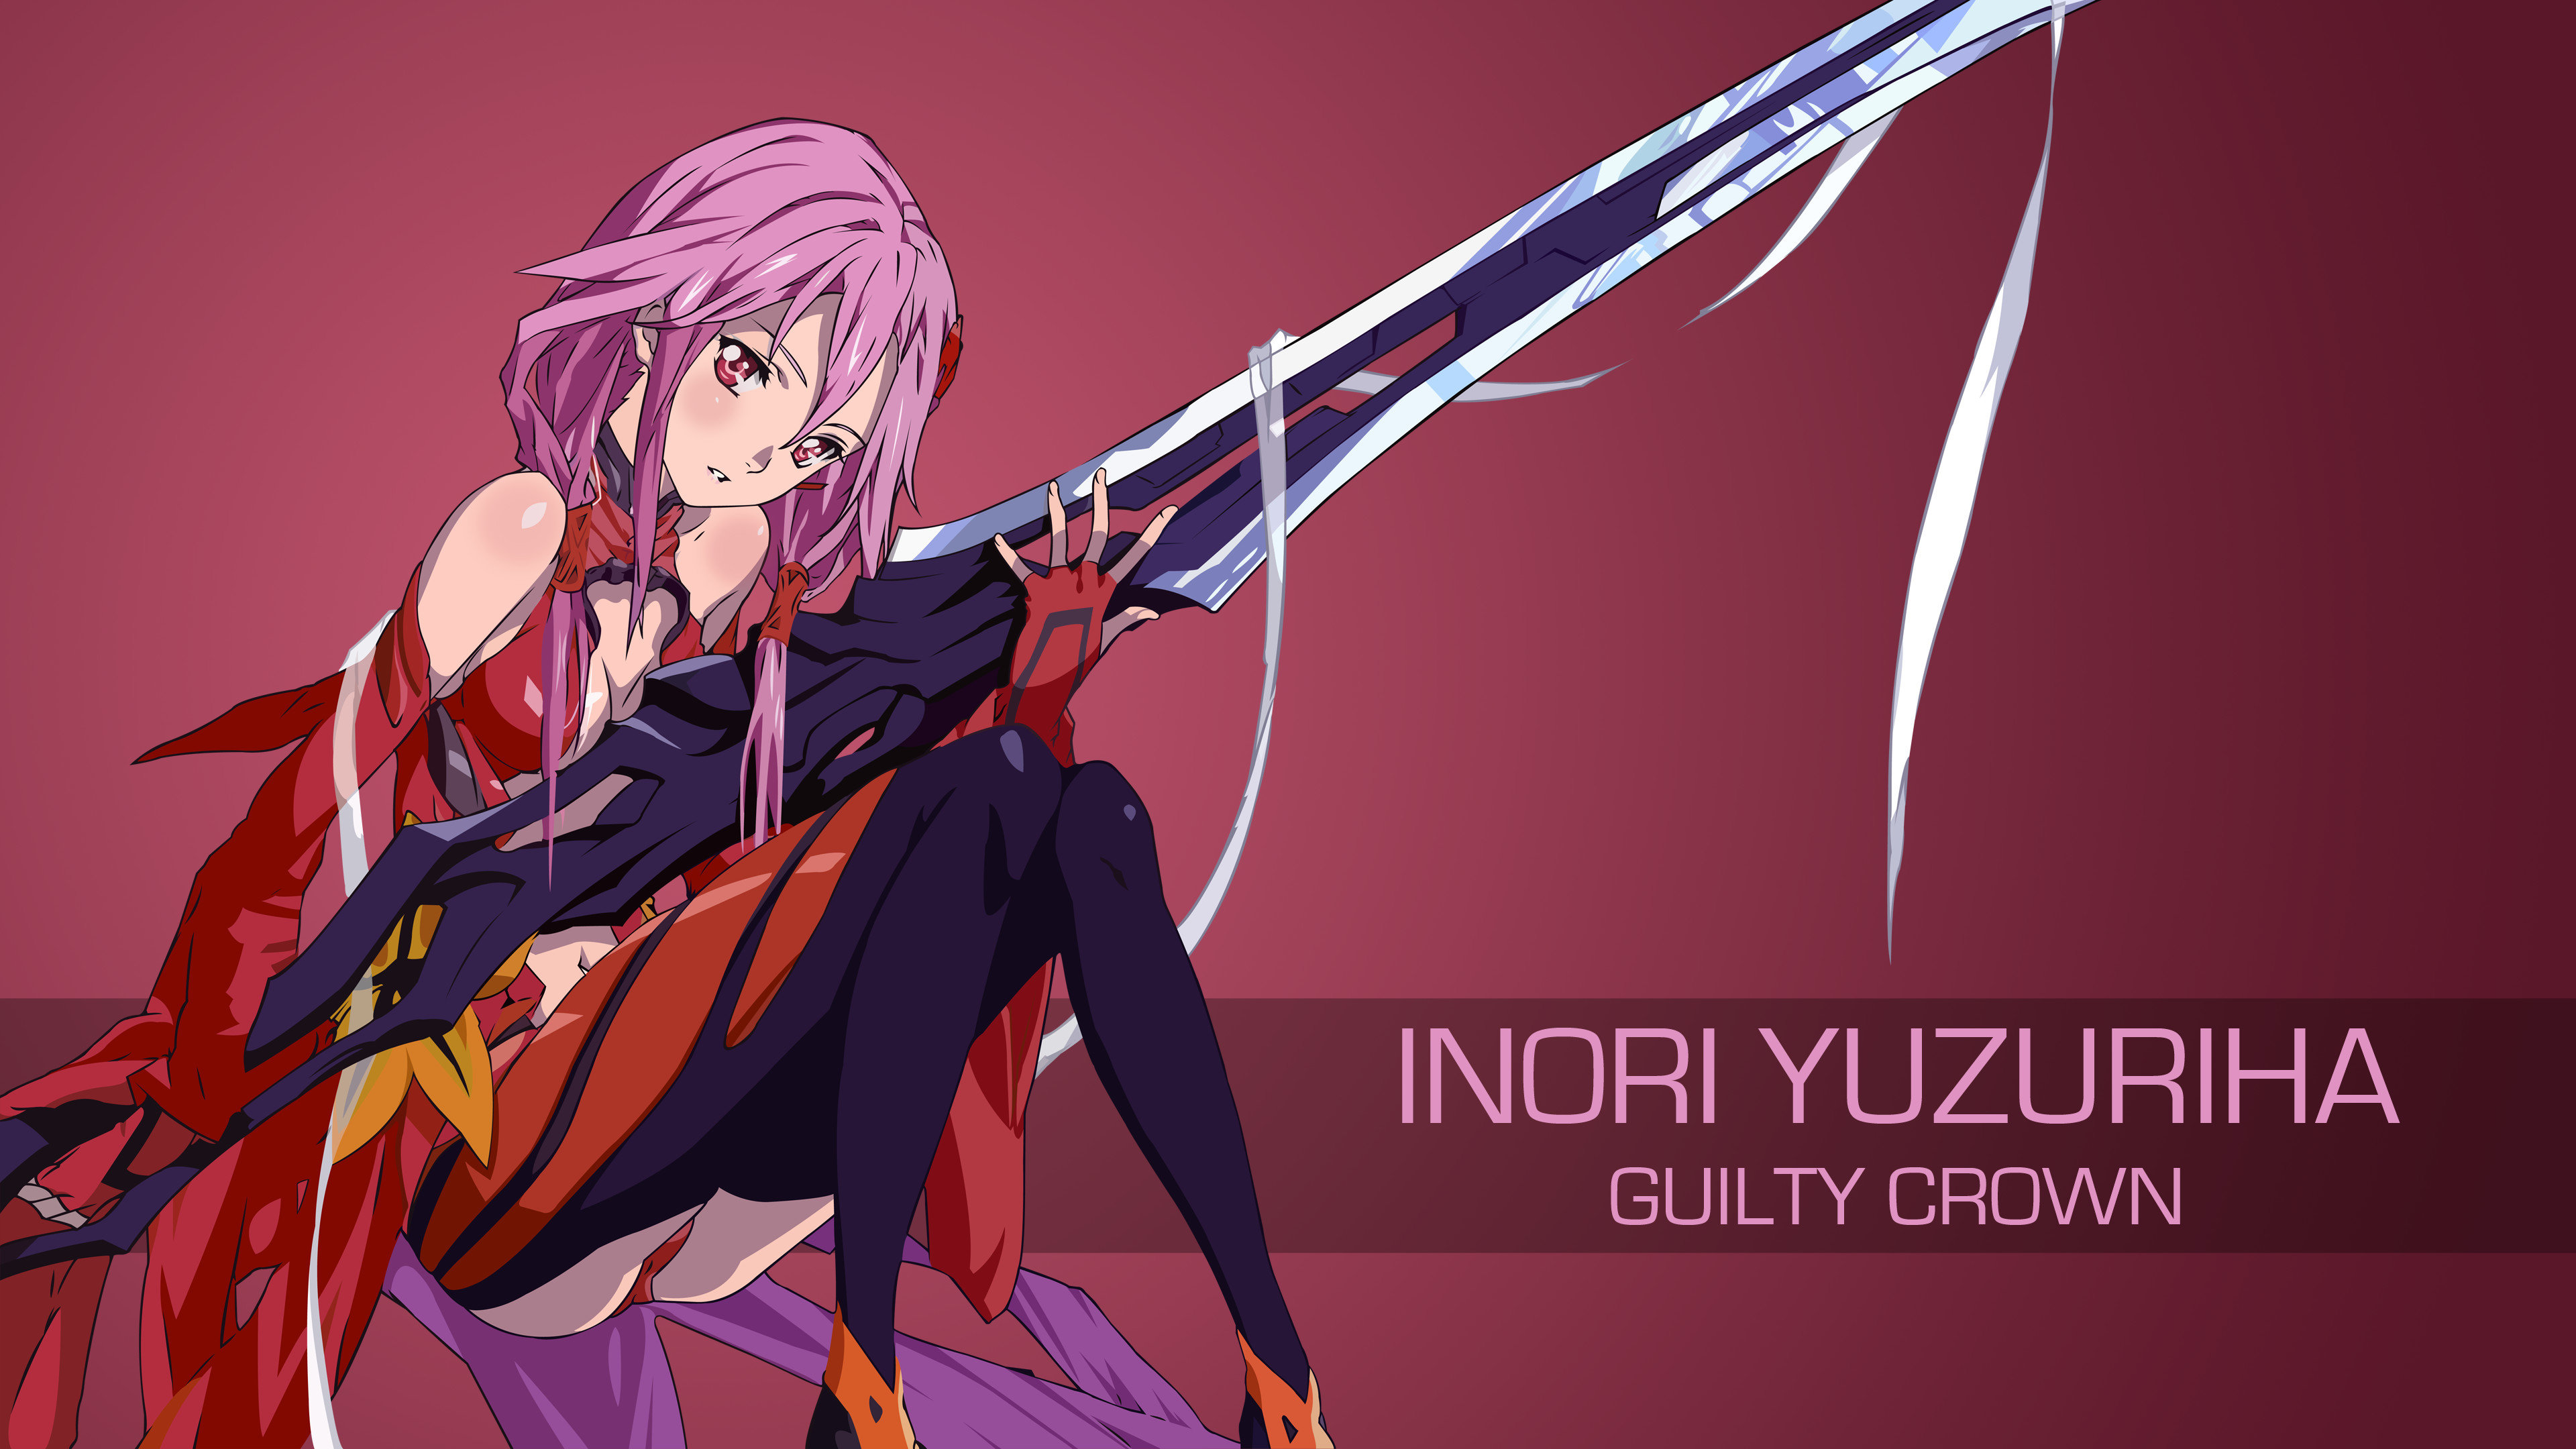 Free Inori Yuzuriha high quality wallpaper ID:254557 for uhd 4k desktop